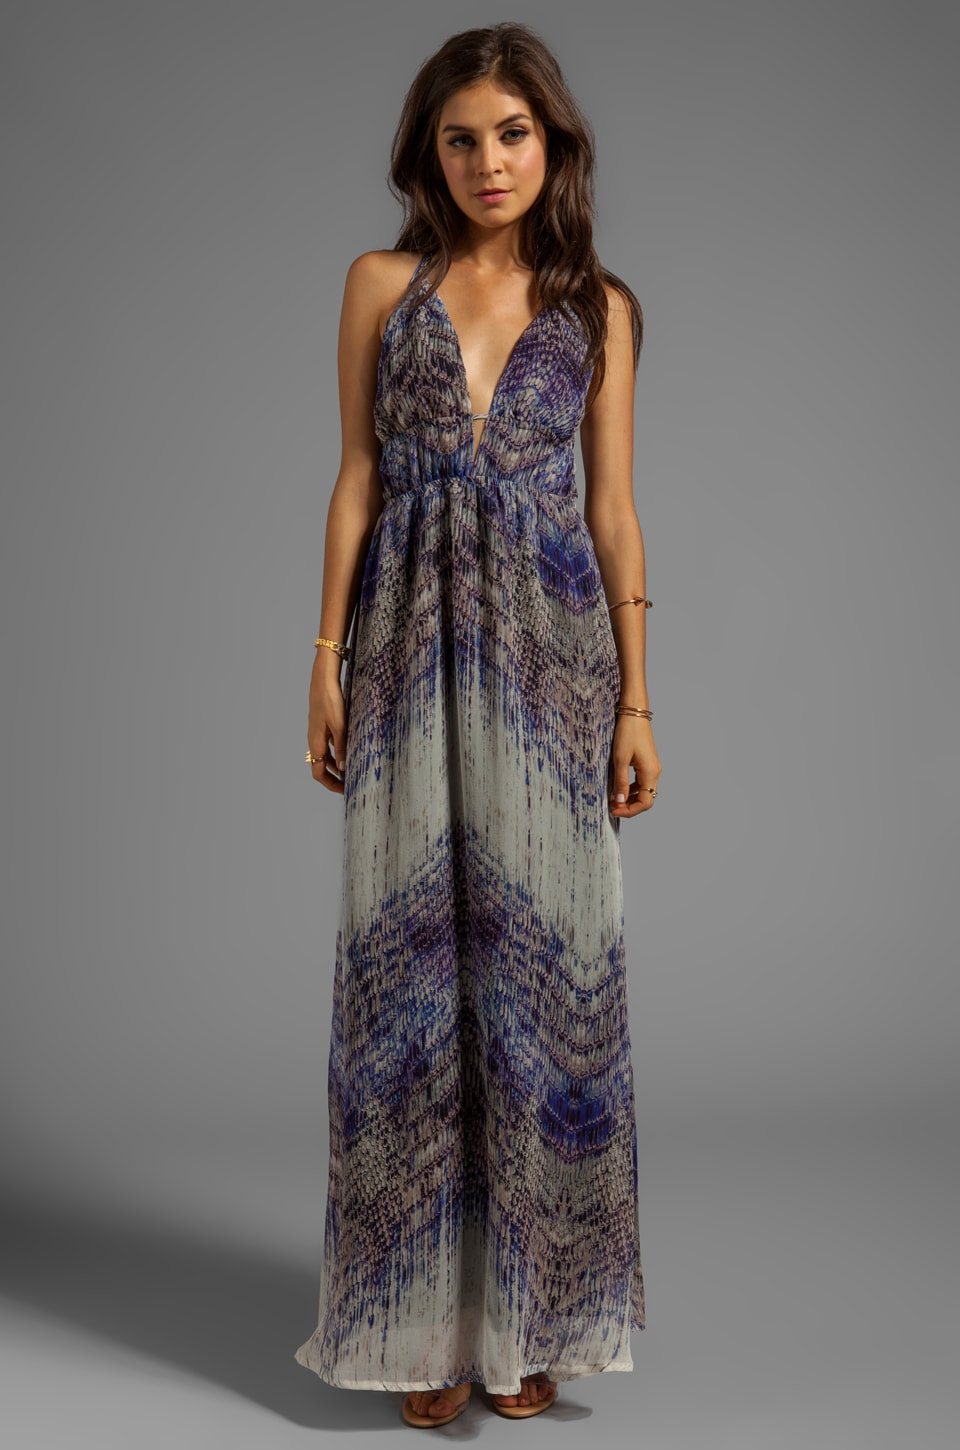 Gypsy 05 Annunaki Long Maxi Dress in Violet